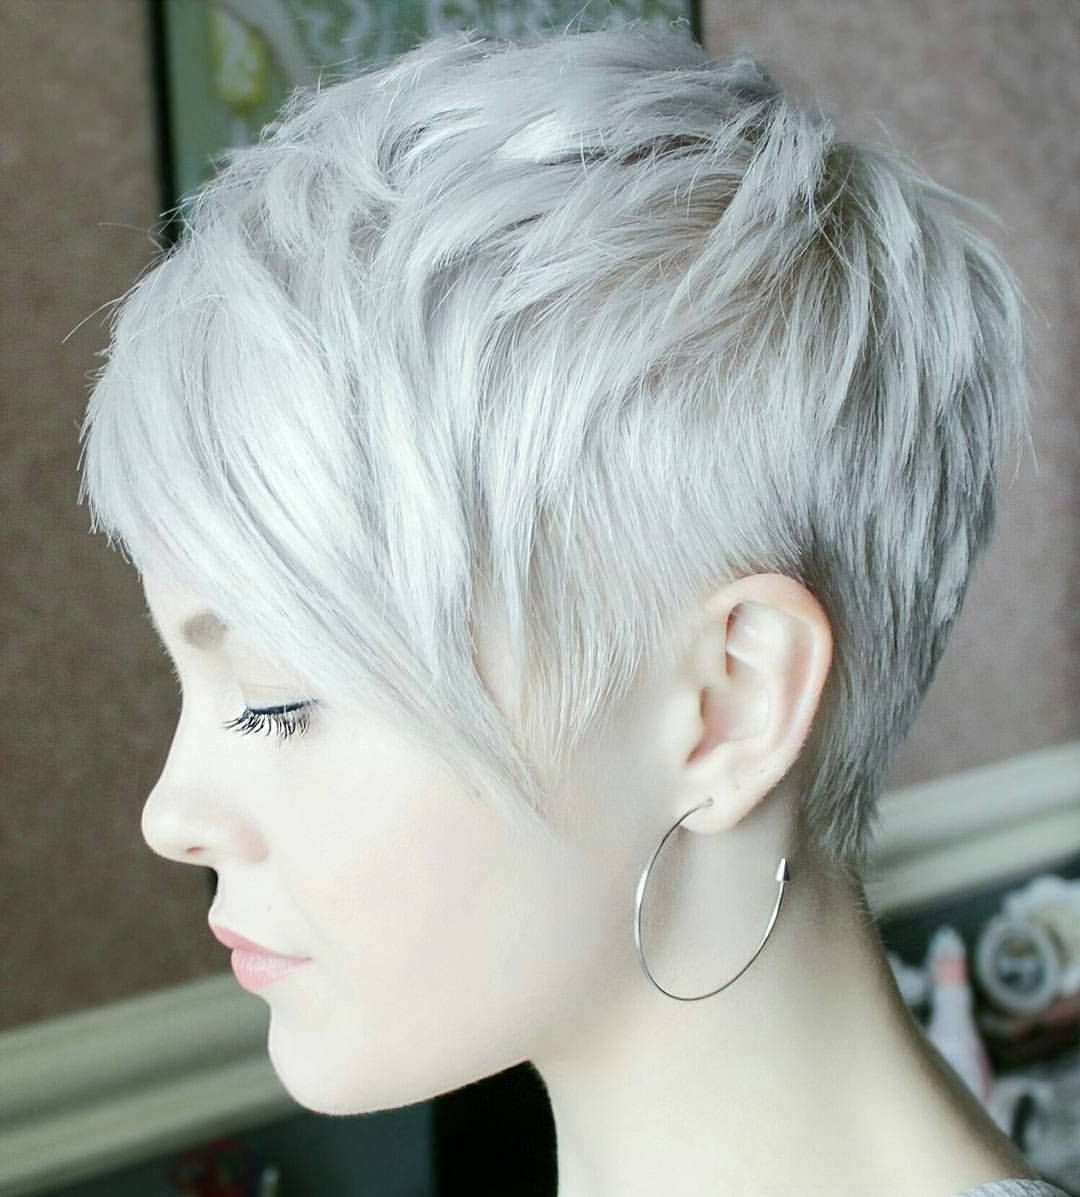 50 Trendsetting Short And Long Pixie Haircut Styles — Cutest Of Them In Best And Newest Ashy Blonde Pixie Hairstyles With A Messy Touch (View 4 of 20)